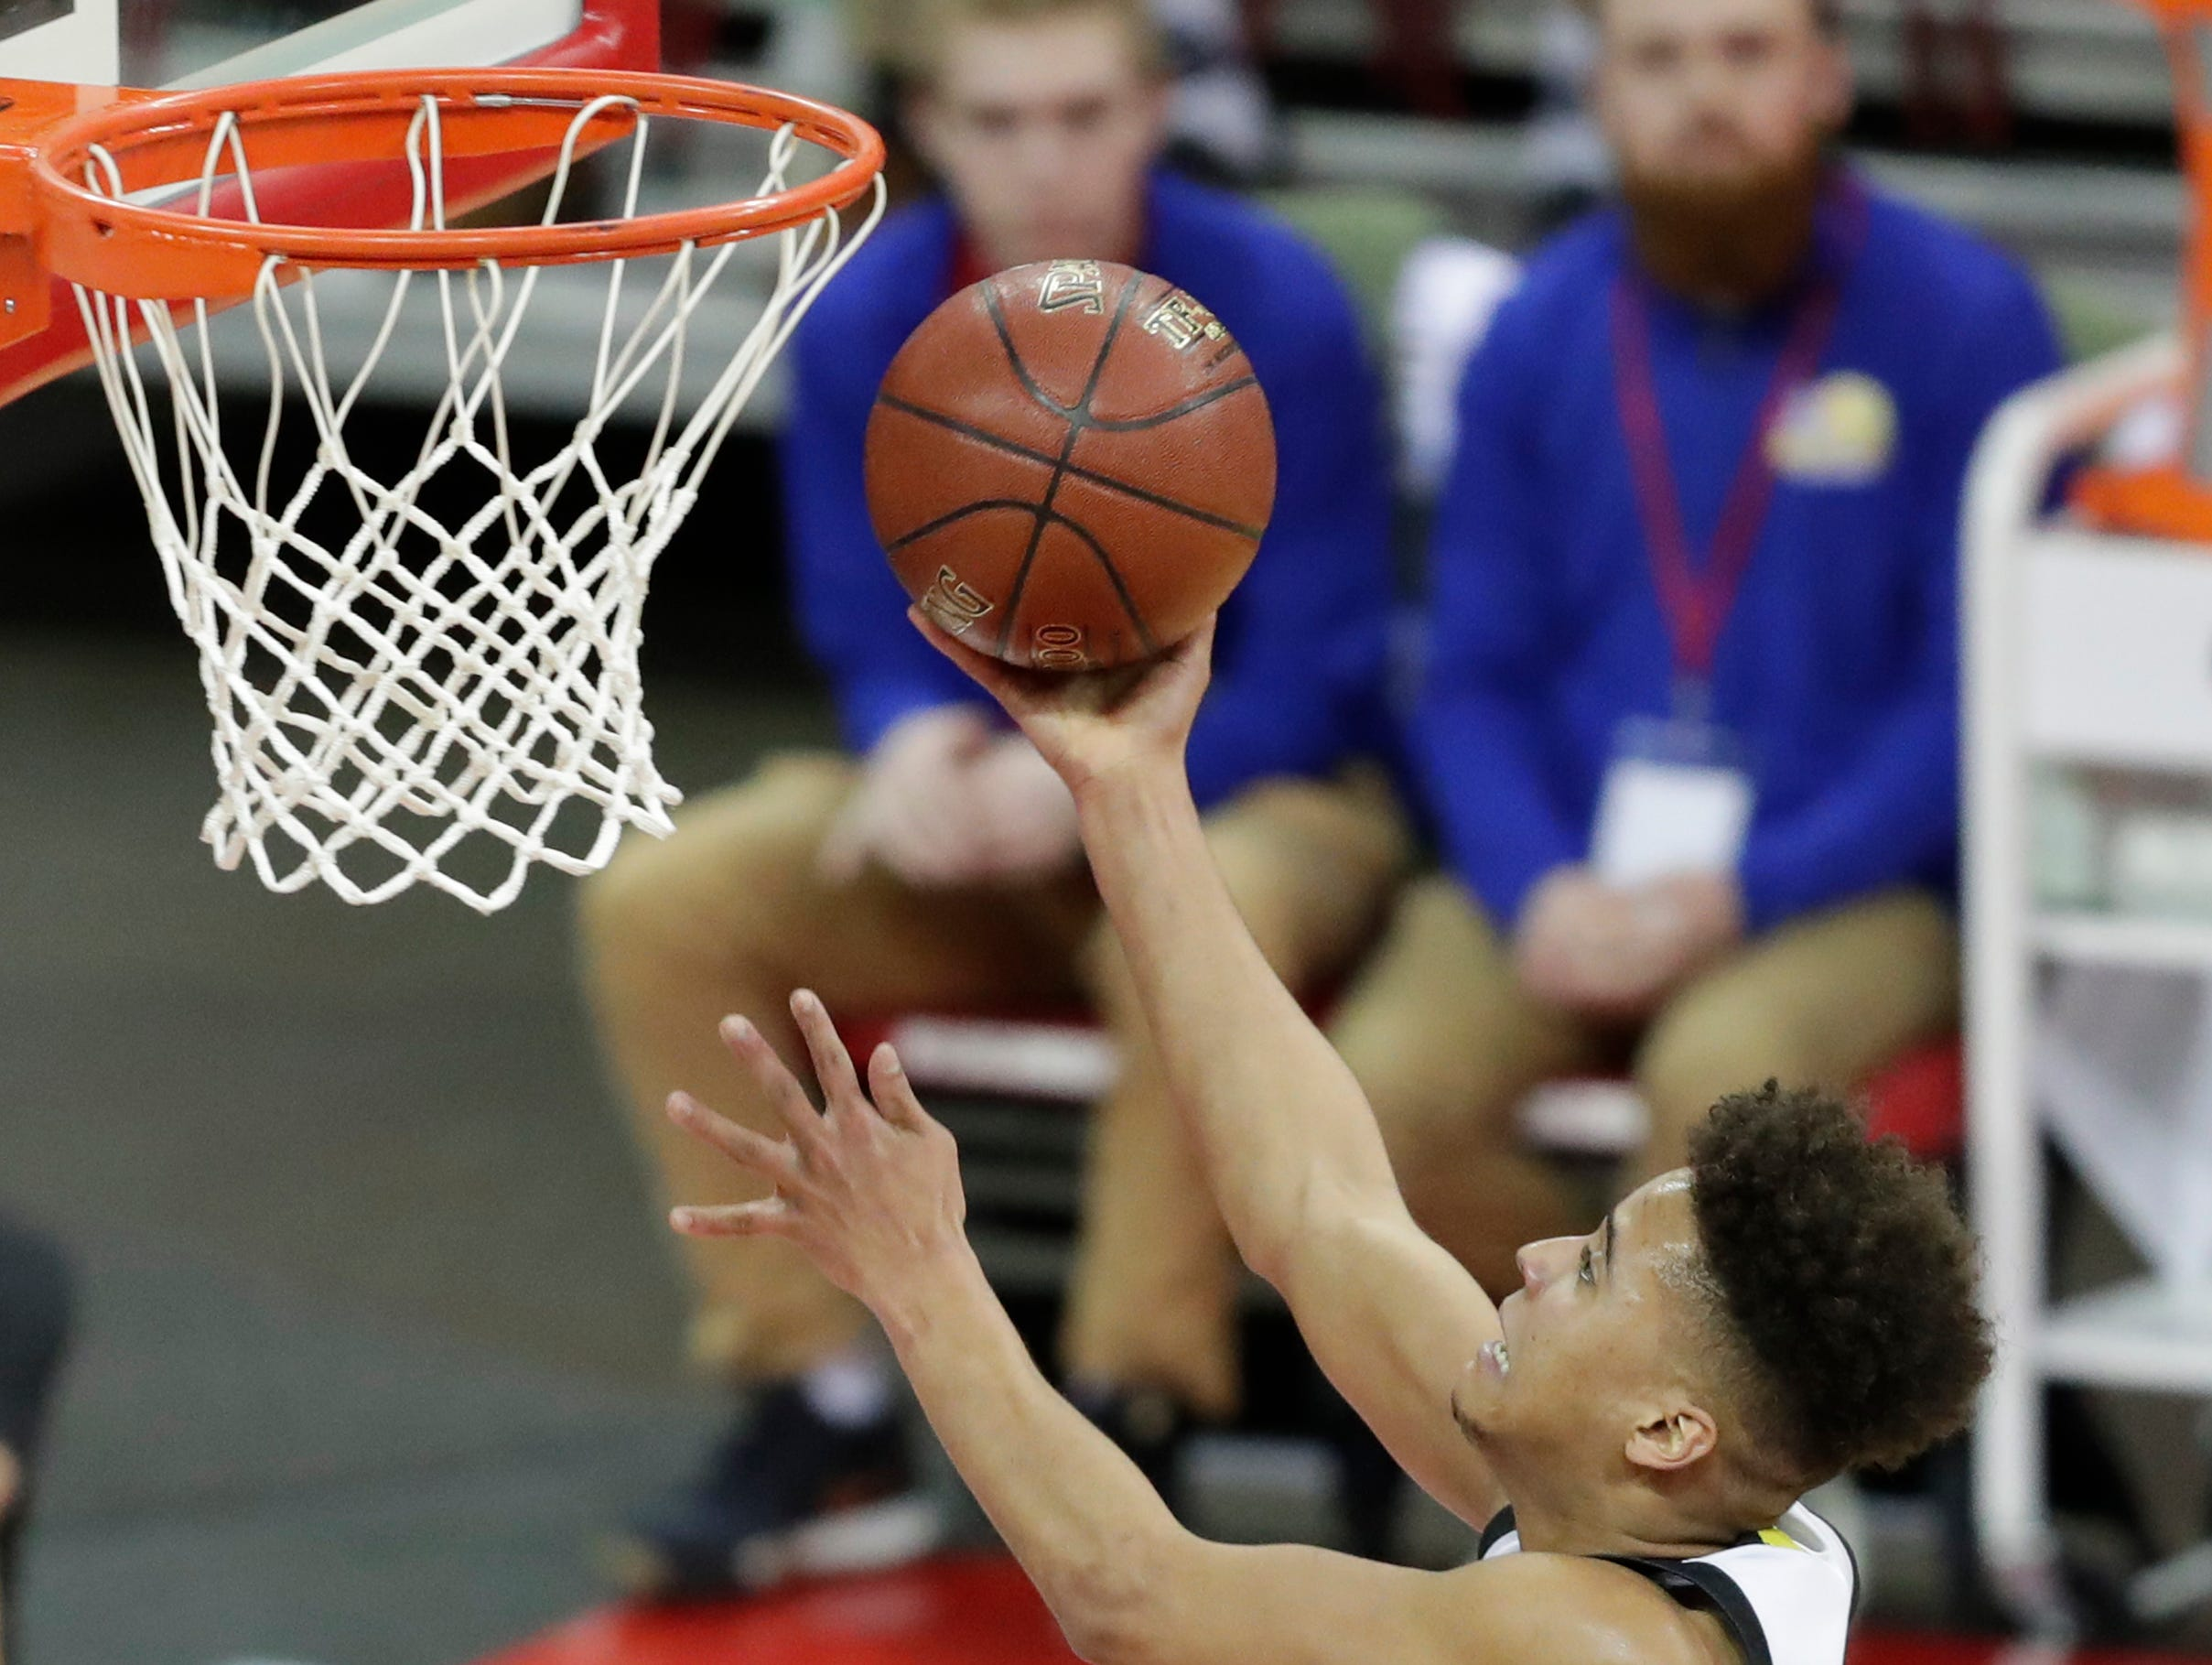 Waupun's Quintin Winterfeldt (3) shoots a layup against Denmark during their WIAA Division 3 boys basketball state semifinal at the Kohl Center Thursday, March 14, 2019, in Madison, Wis.